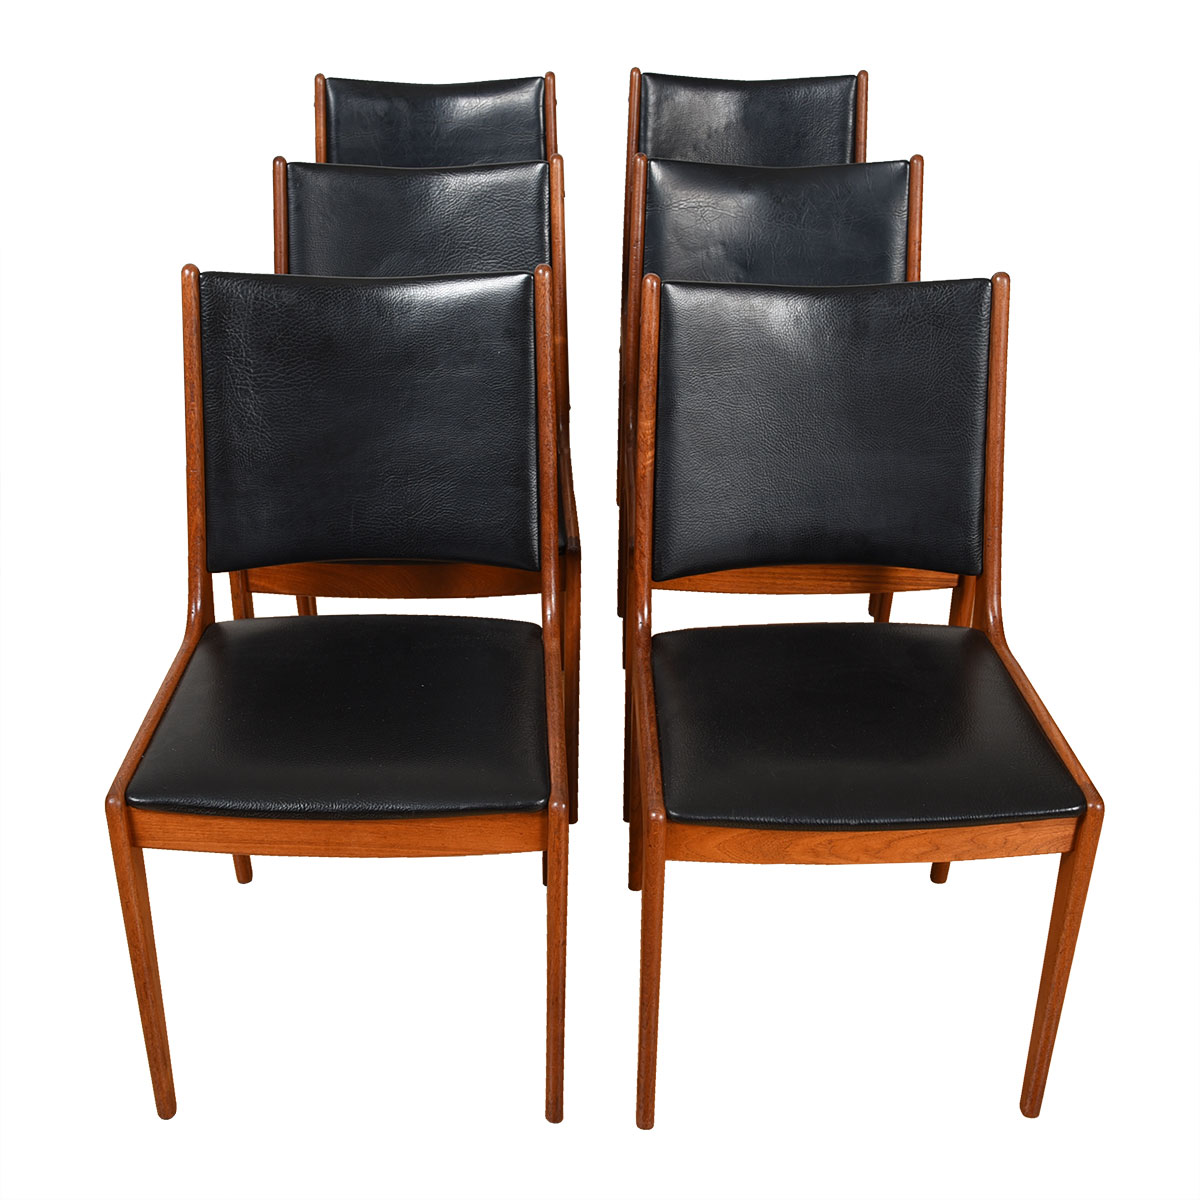 Set of 6 Johannes Andersen Danish Teak Dining Chairs for Uldum Mobelfabrik